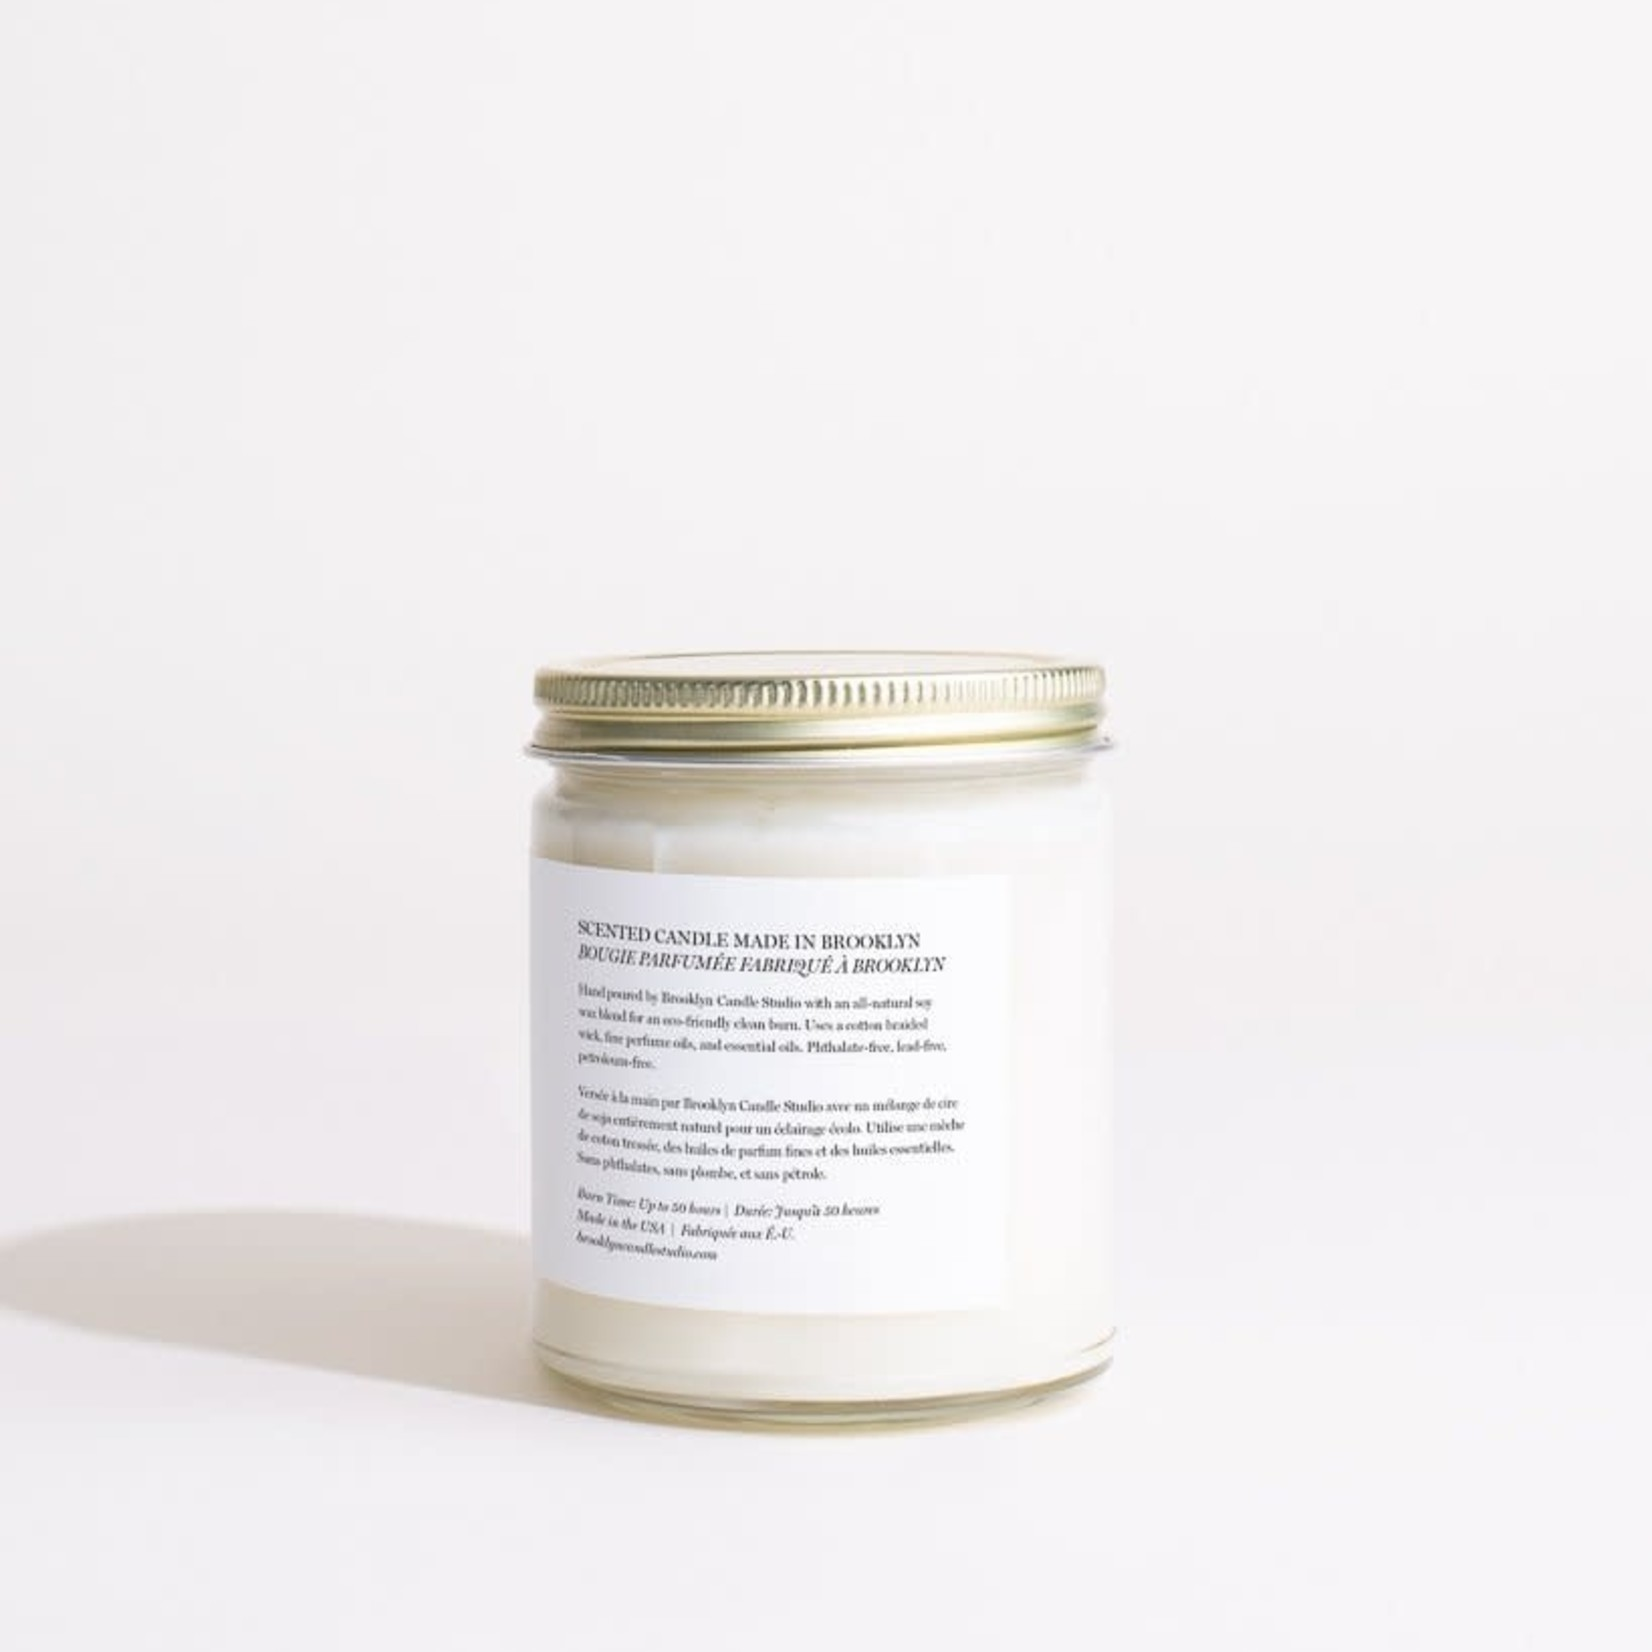 Brooklyn Candle Studio Brooklyn Candle Studio SUNDAY MORNING Minimalist Jar Candle